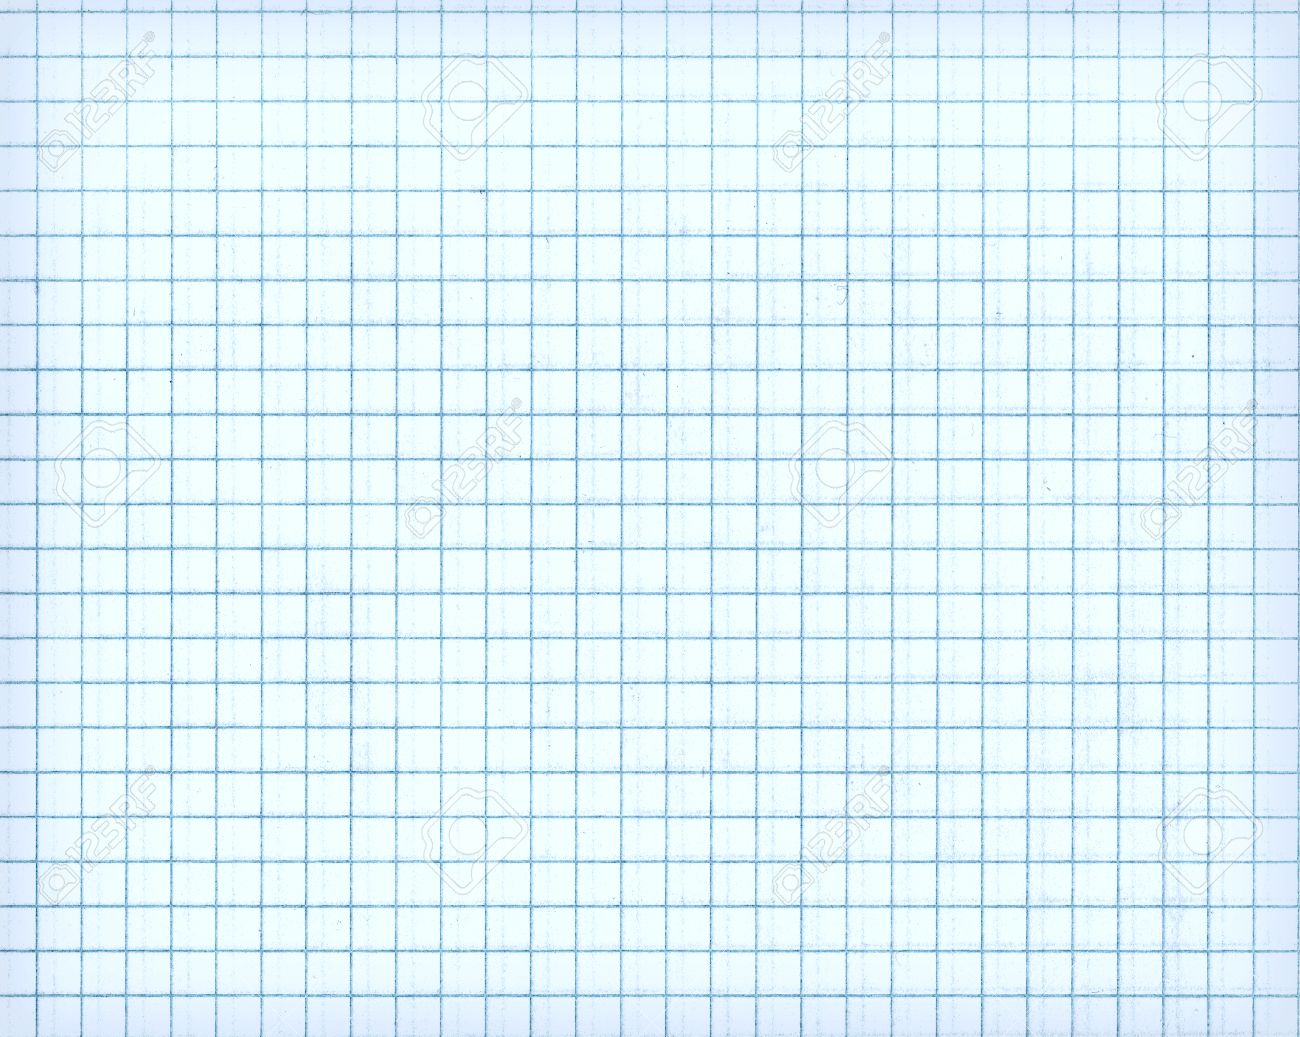 worksheet Math Paper white squared empty math paper sheet texture background stock photo 34663458